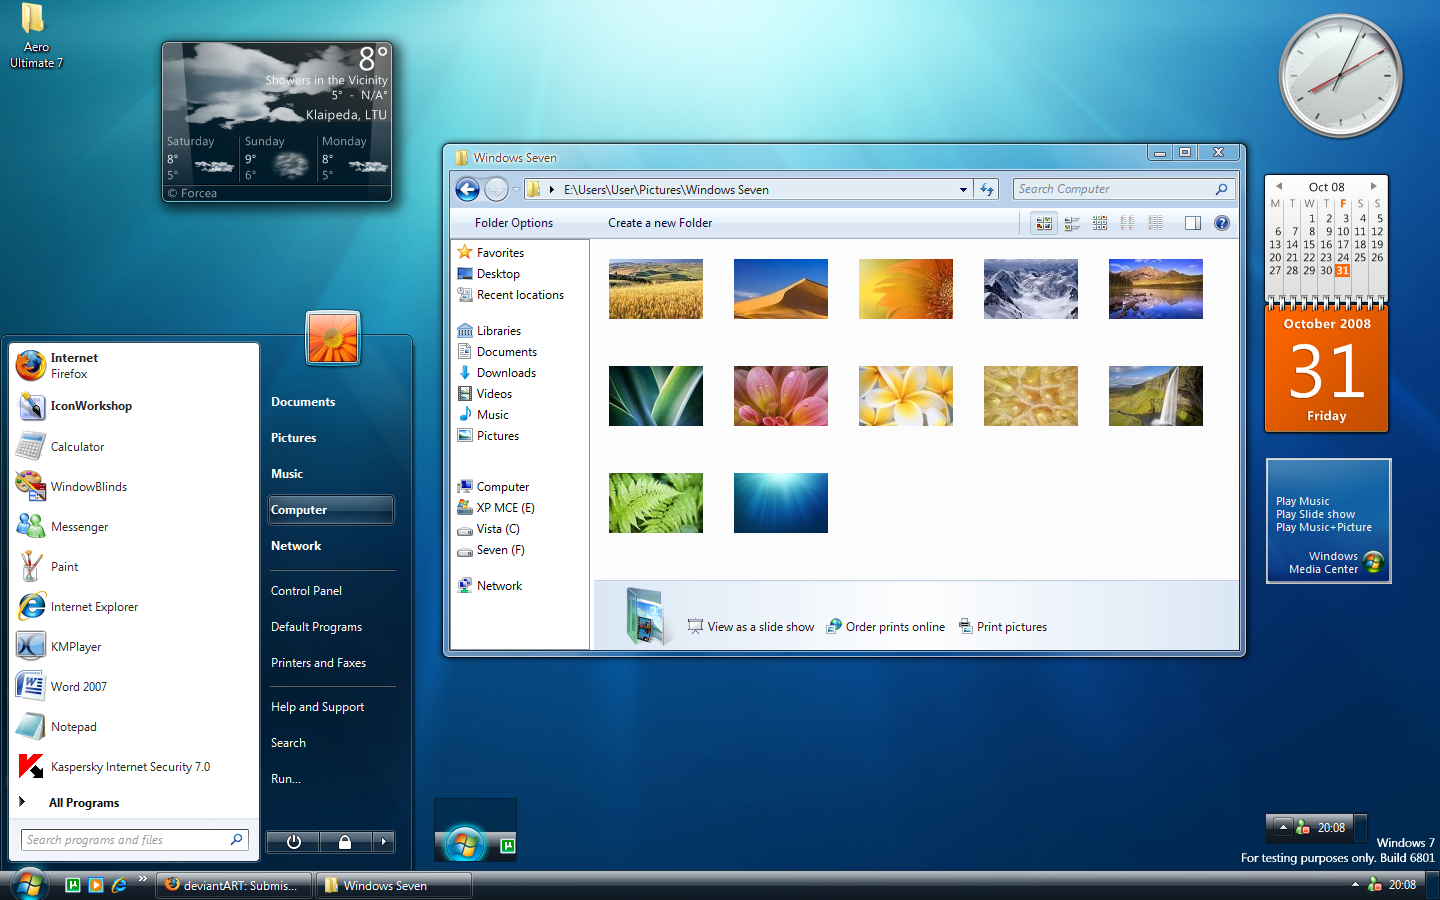 download-microsoft-windows-7-ultimate-march-2020-free-for-pc-8659139